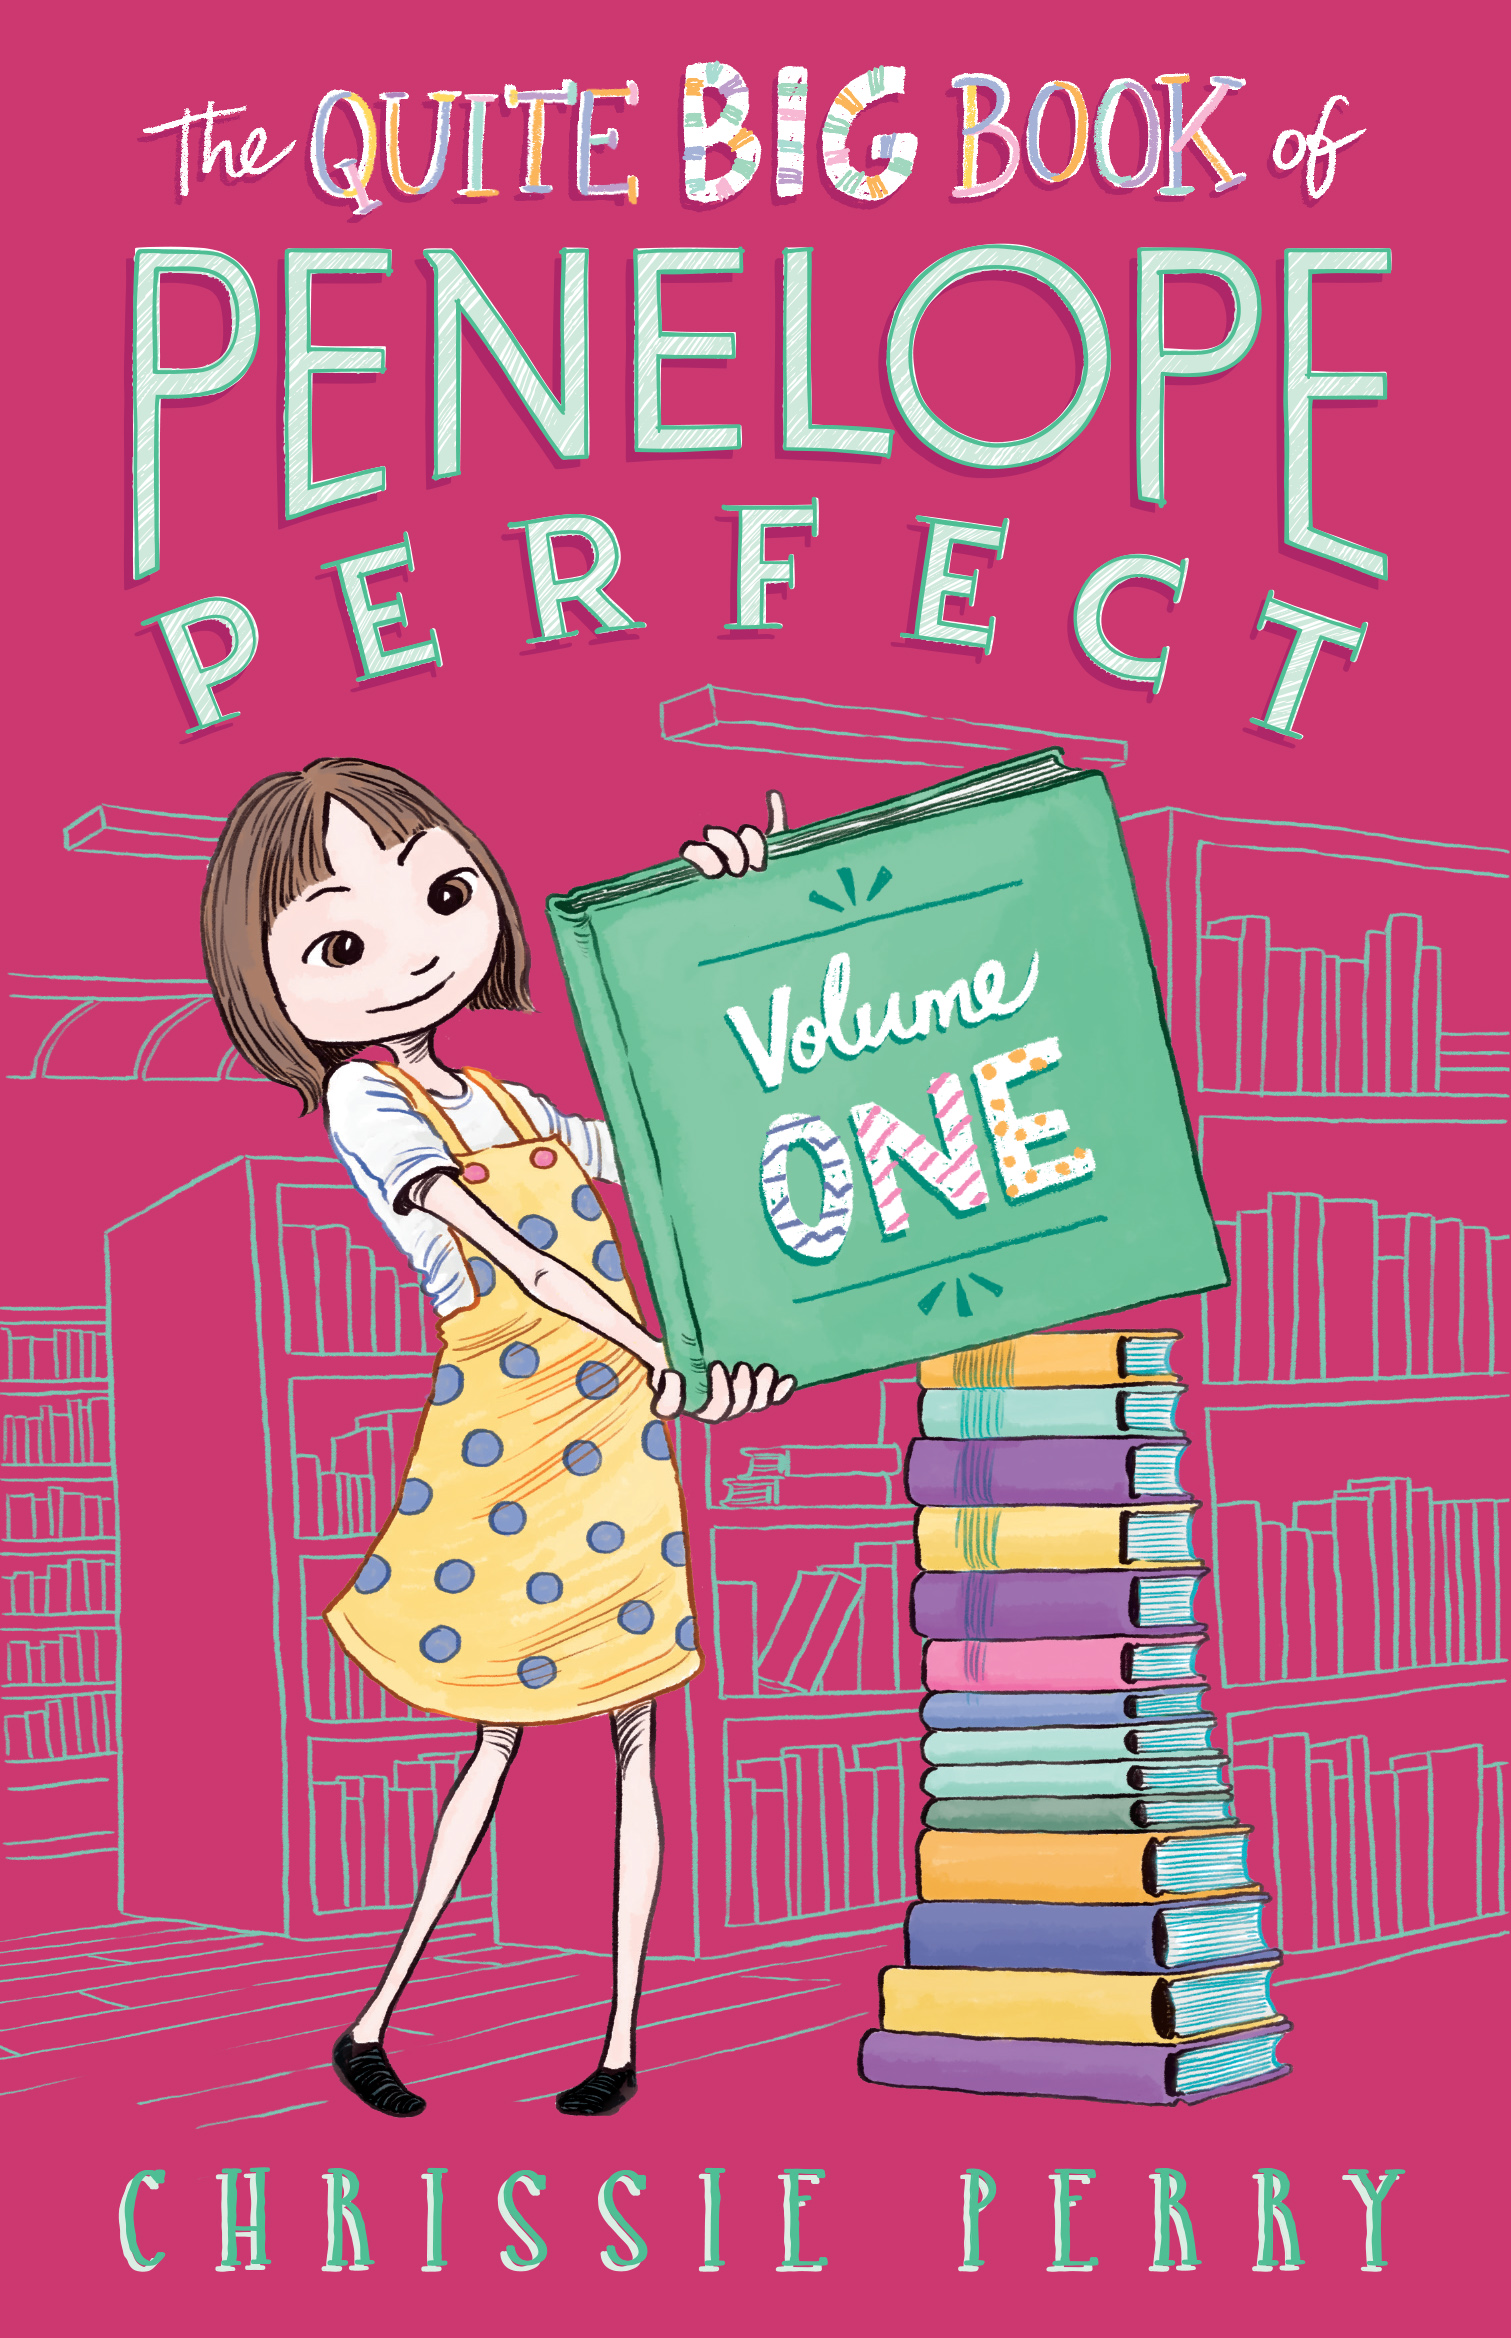 The Quite Big Book of Penelope Perfect